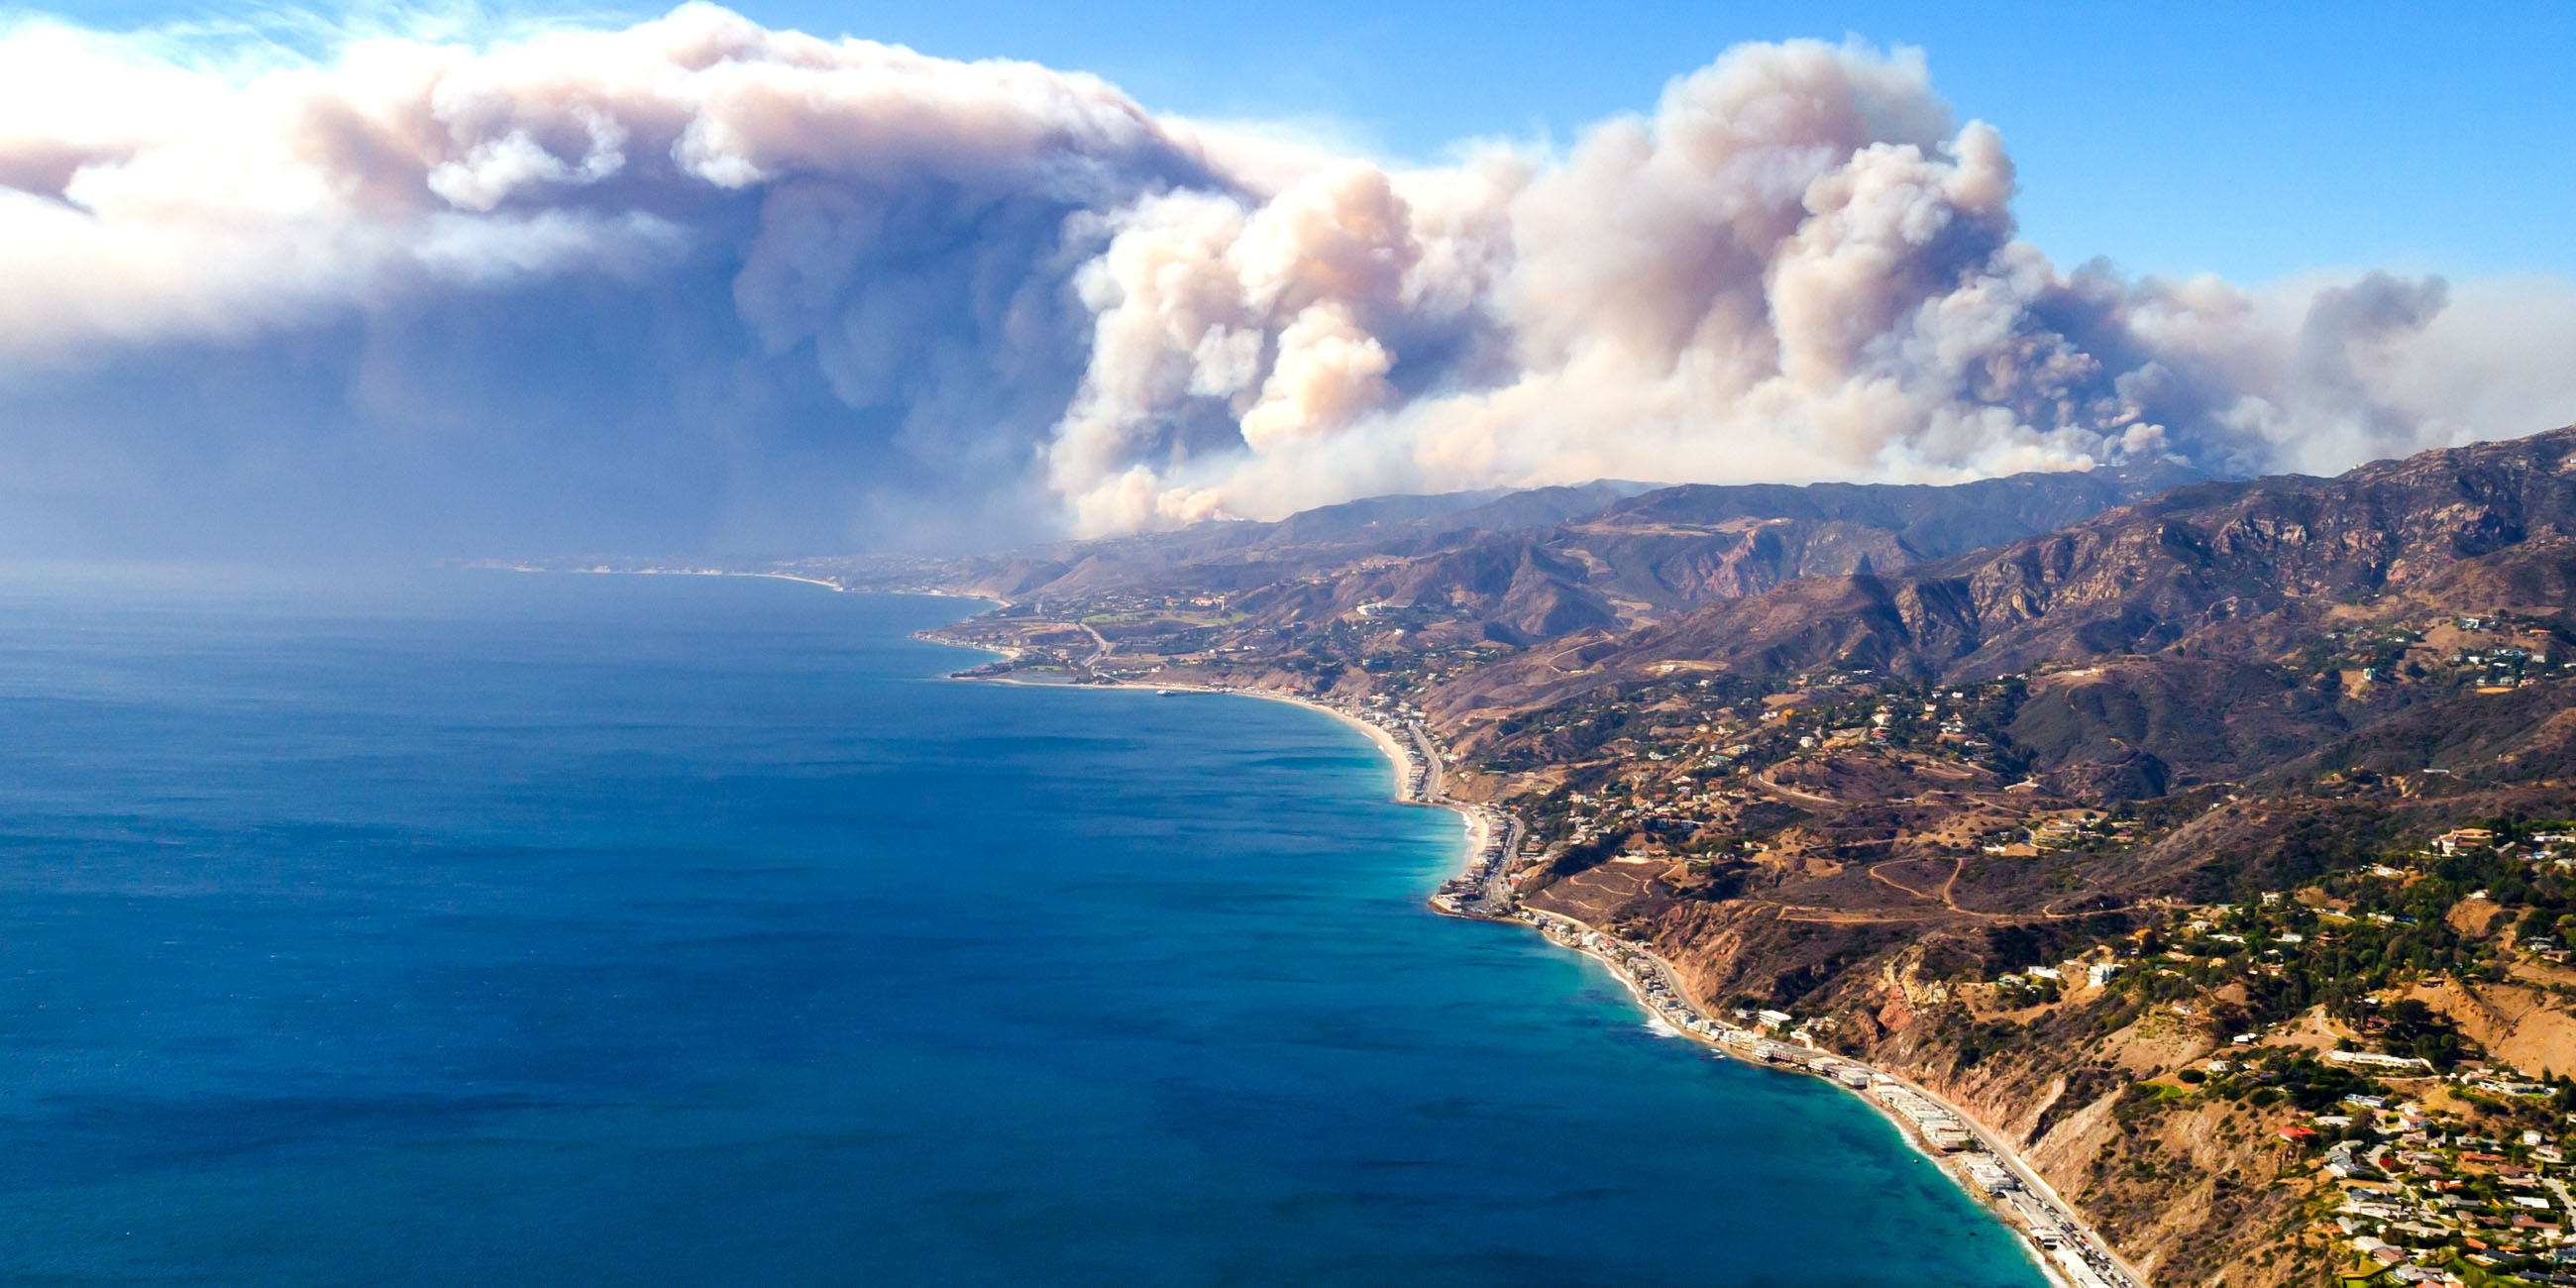 beachside mountains with the Woolsey fire burning in the back mountains